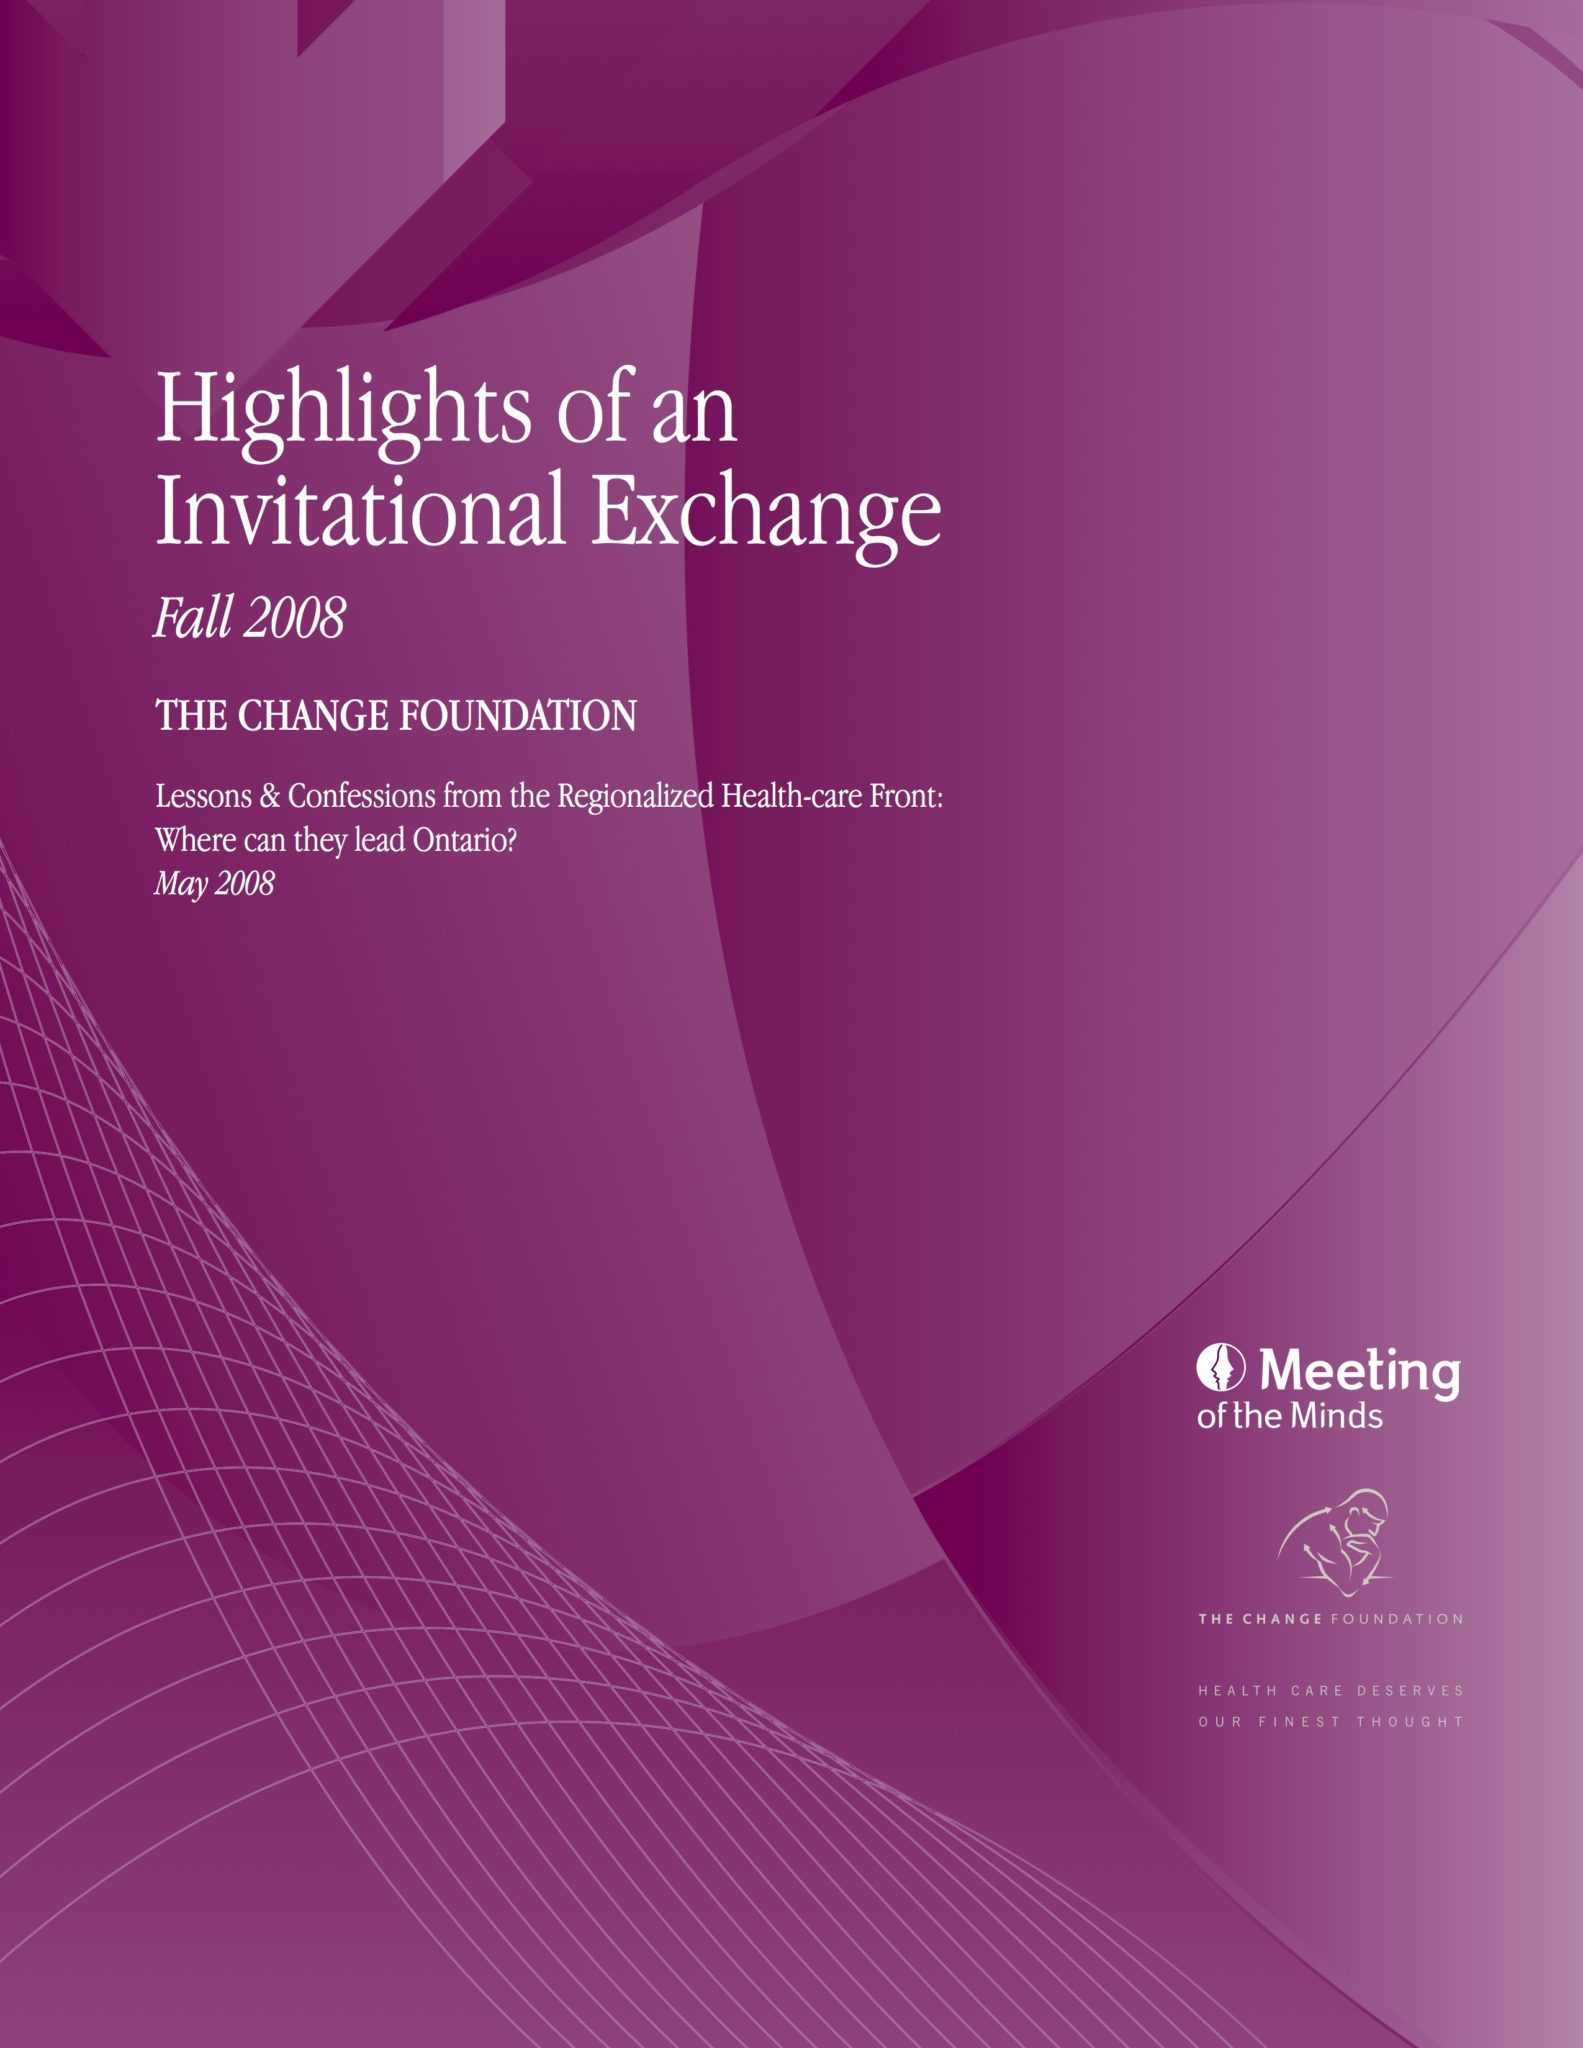 Highlights of an Invitational Exchange: Meeting of The Minds 2008